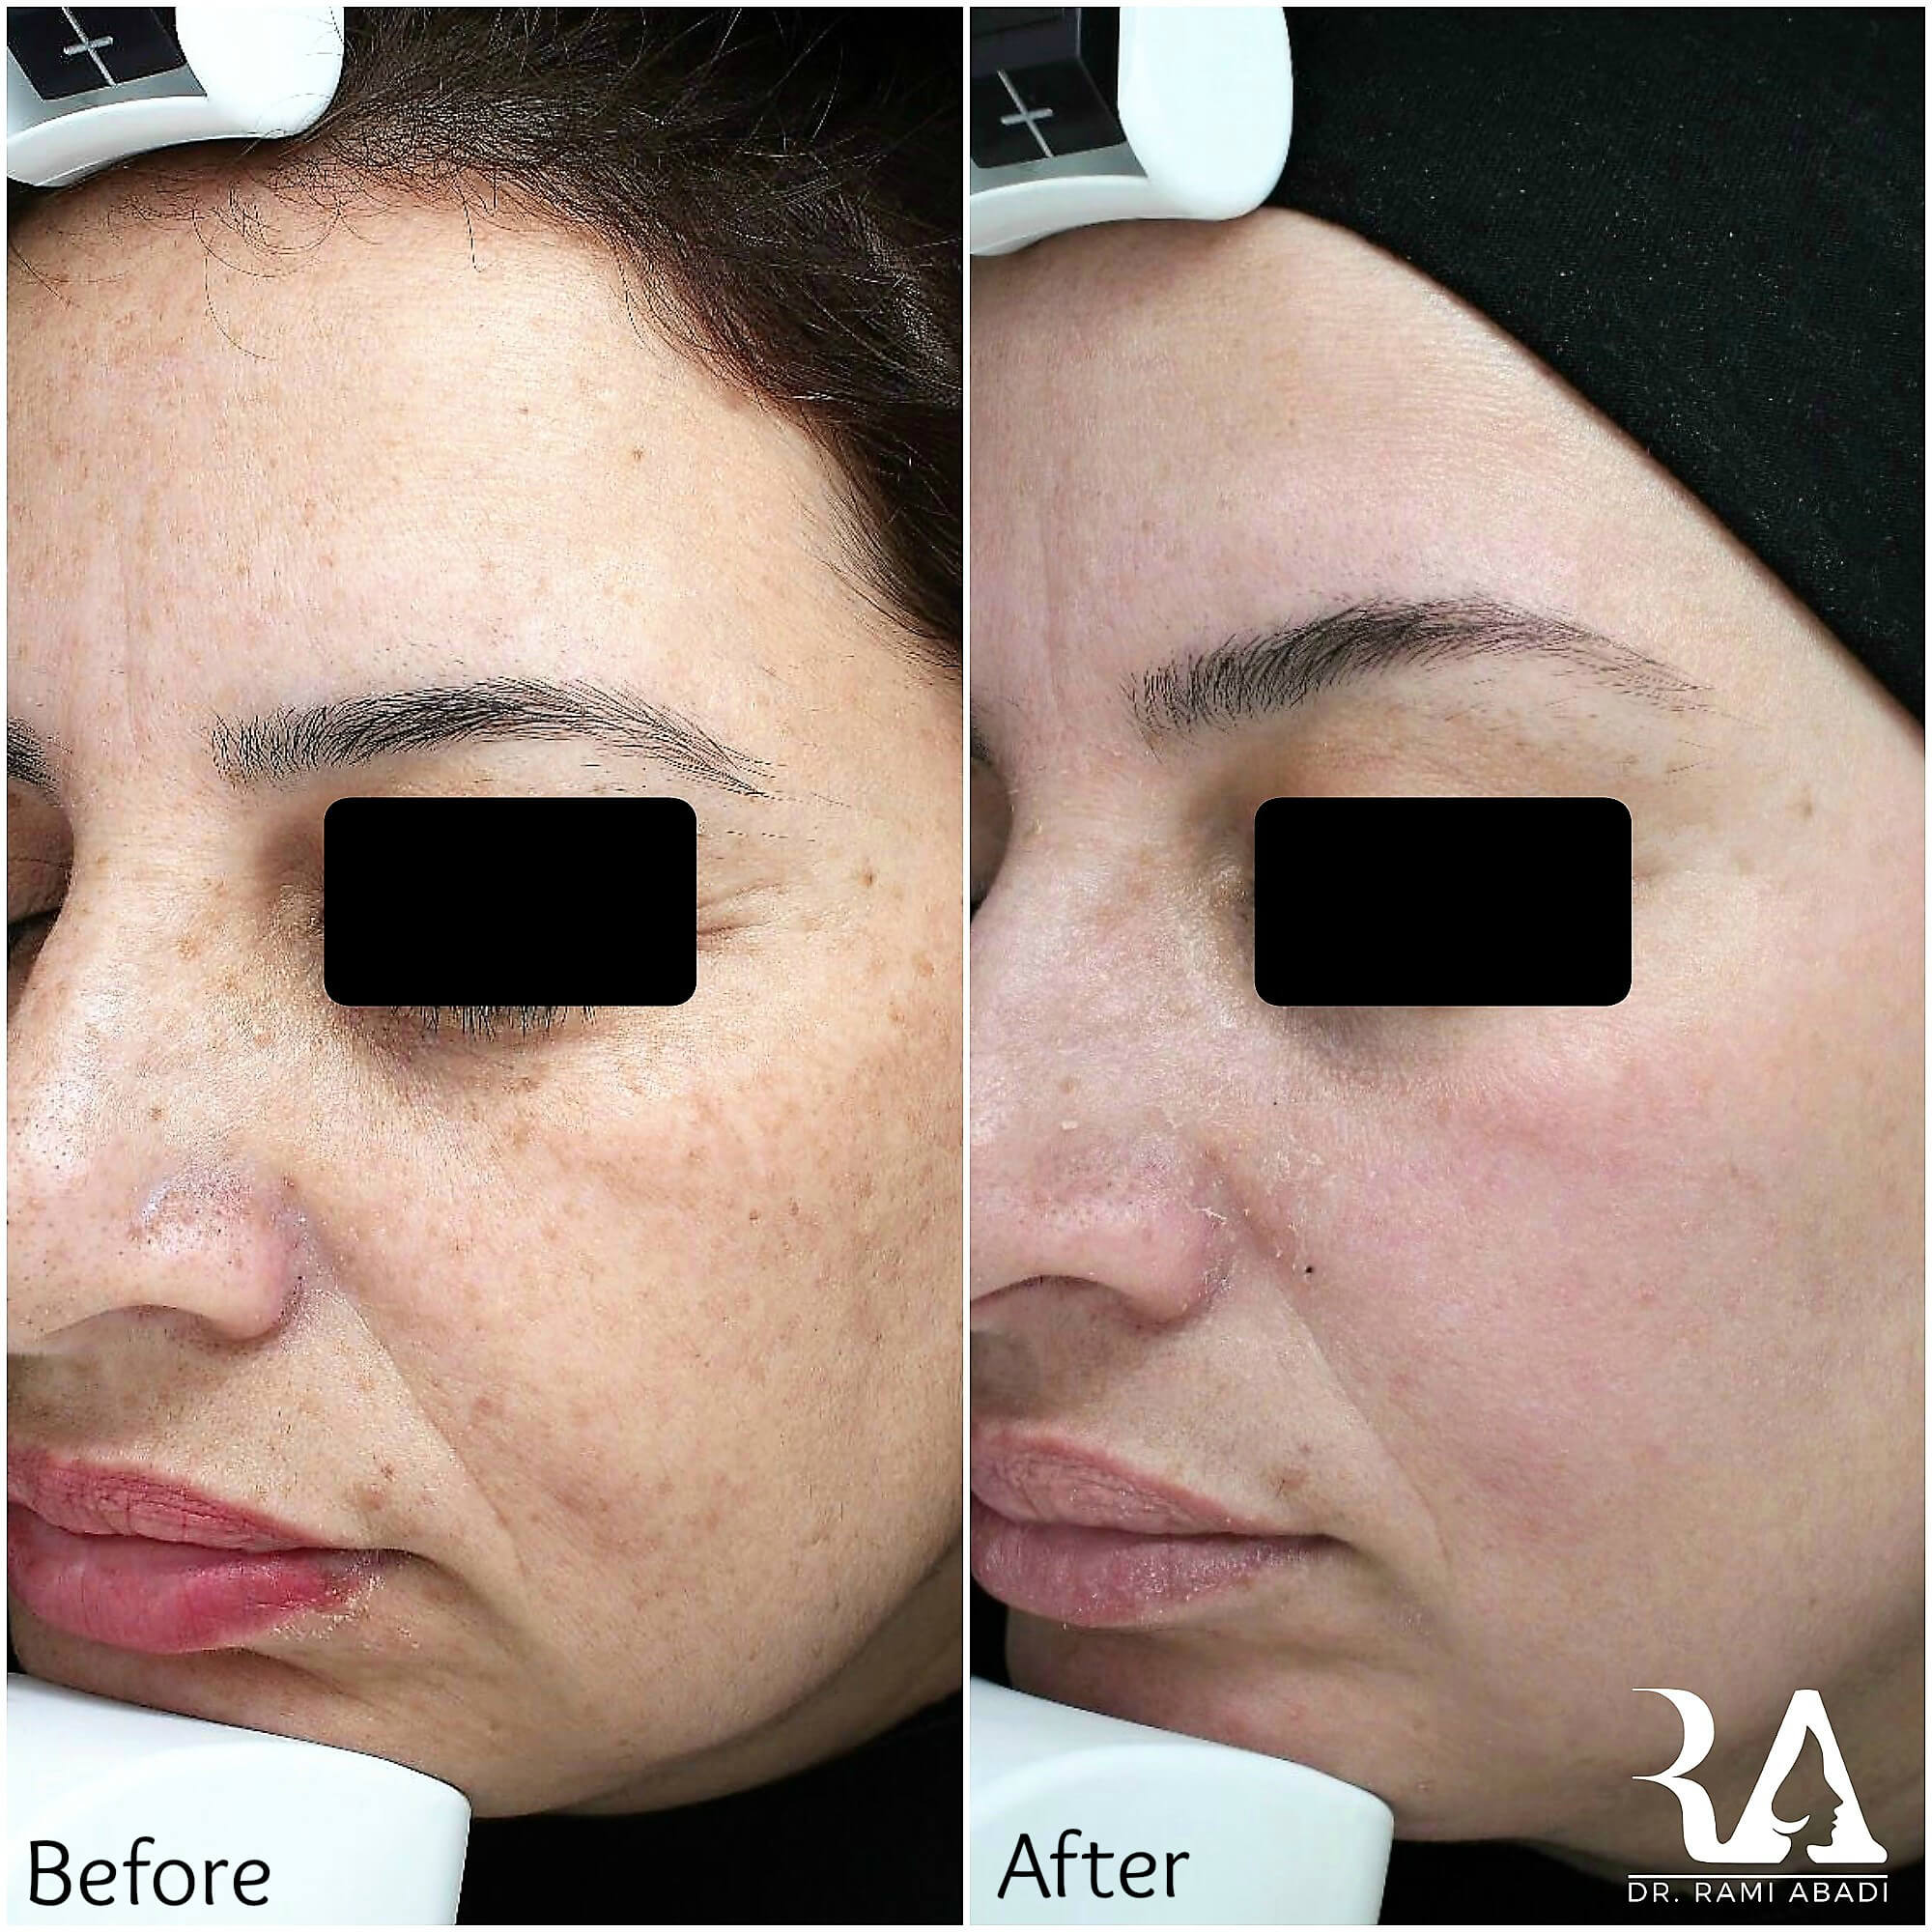 Treatment of freckles, pigmentation and skin texture